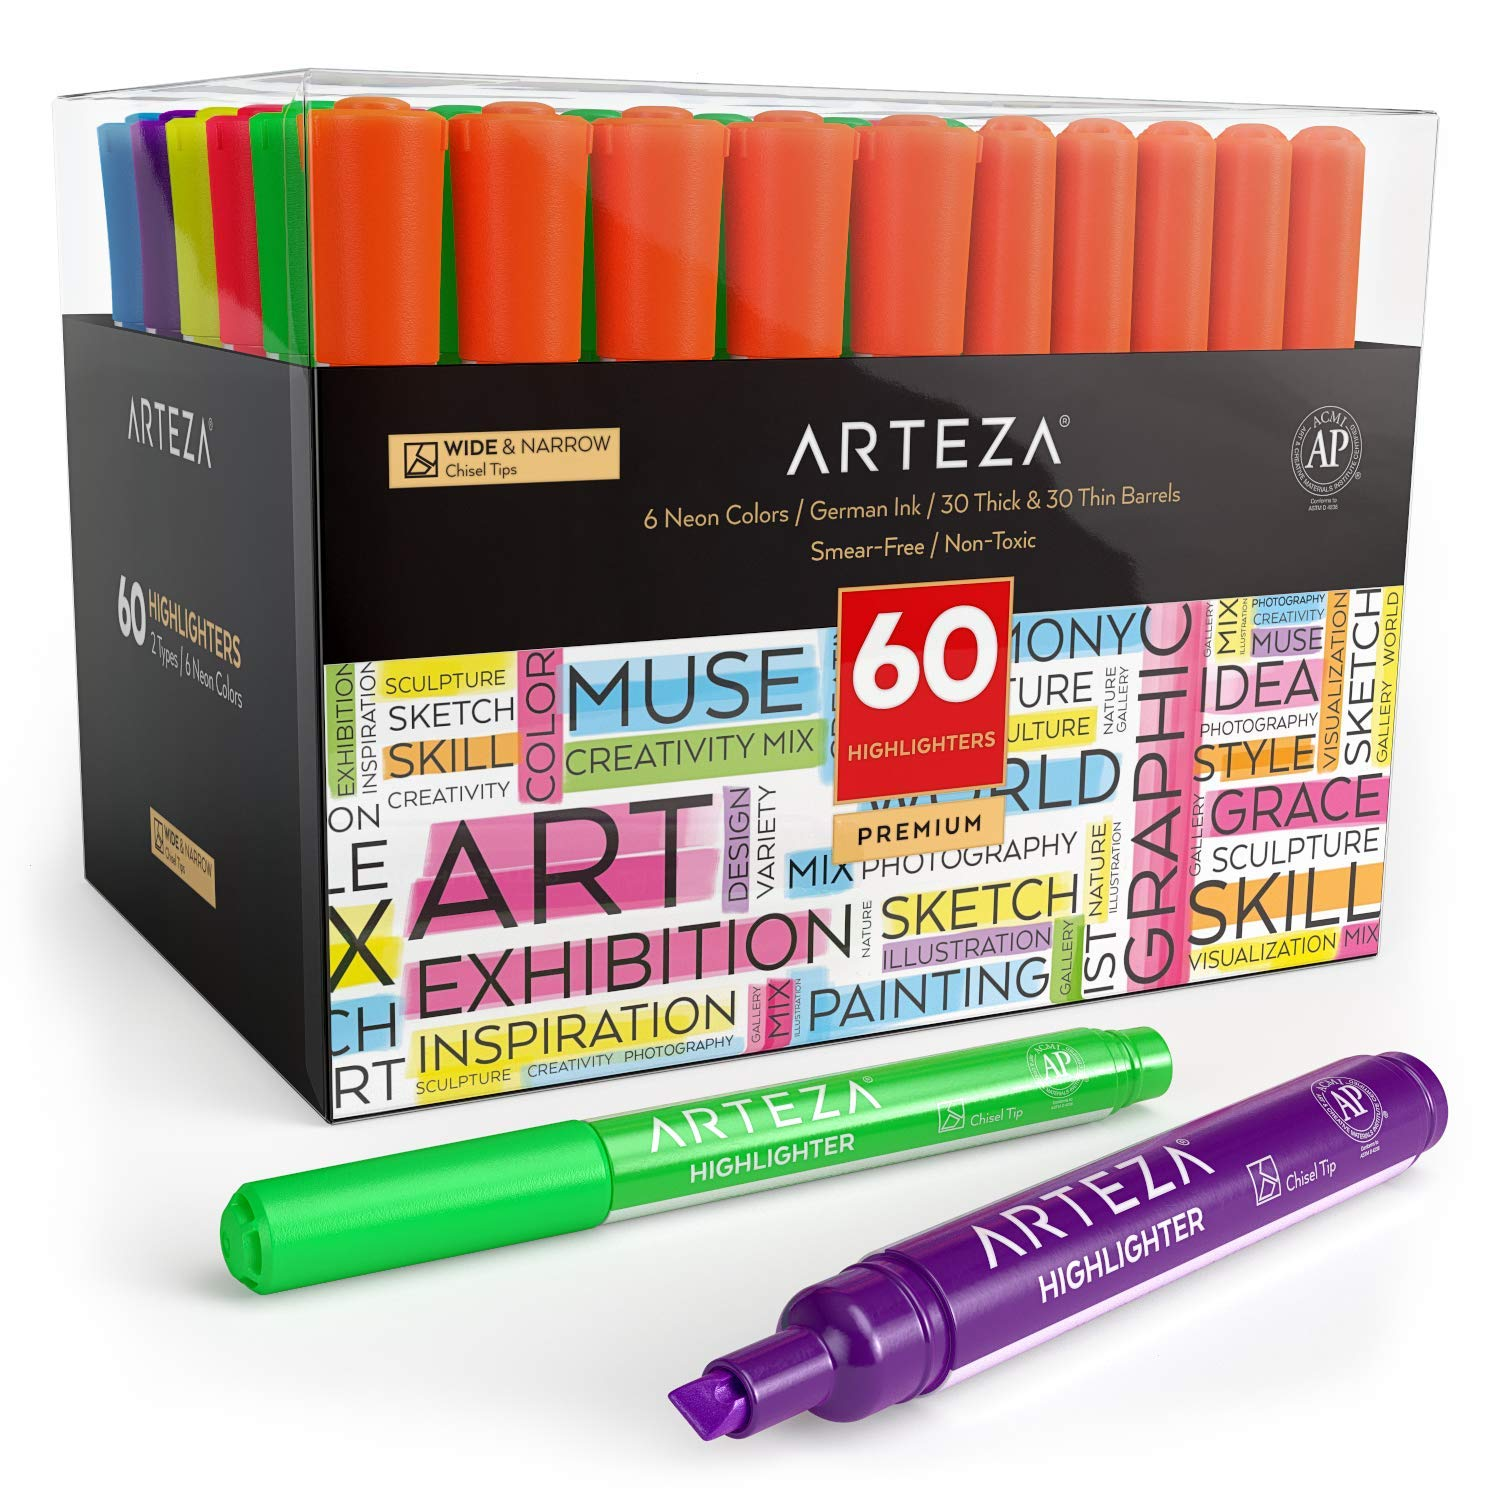 Arteza Highlighters Set of 60, Bulk Pack of Colored Markers, Wide and Narrow Chisel Tips, 6 Assorted Neon Colors, for Adults & Kids …